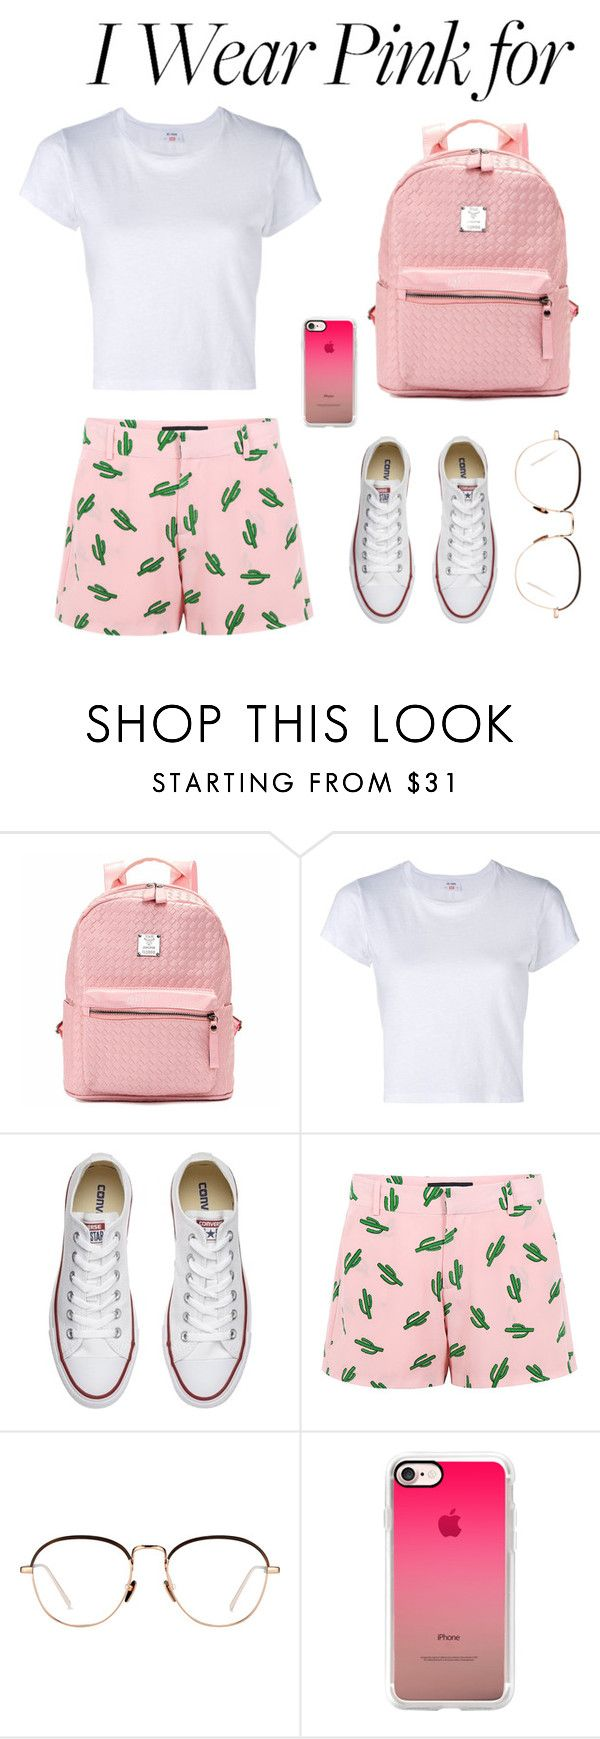 """""""Untitled #92"""" by lazymarmot ❤ liked on Polyvore featuring RE/DONE, Converse, American Retro, Linda Farrow, Casetify and IWearPinkFor"""